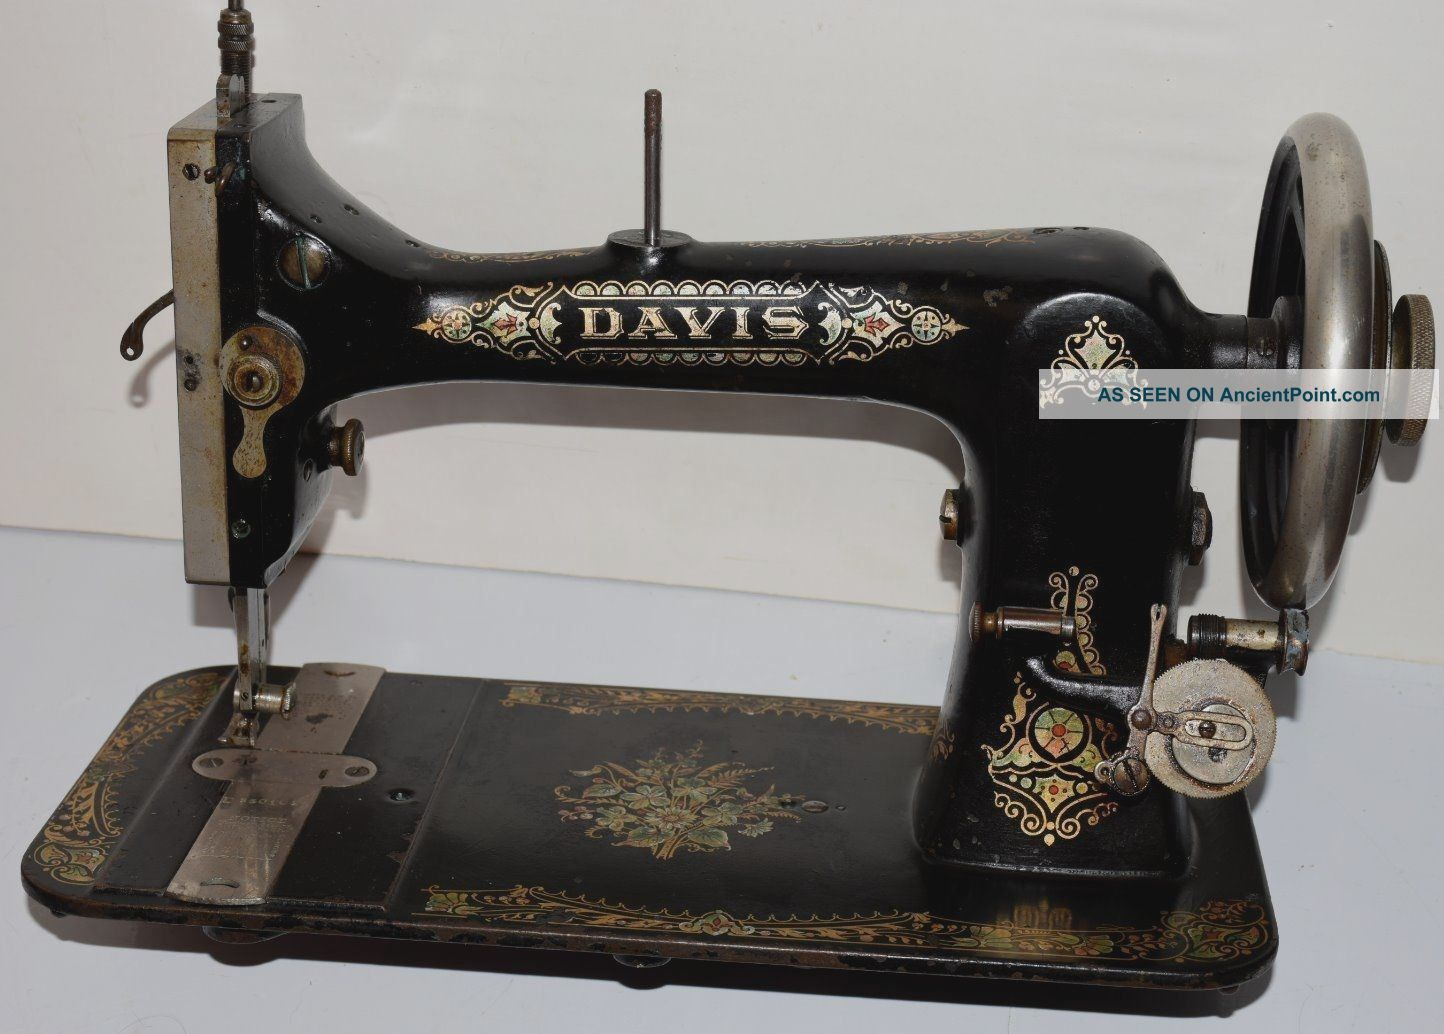 Antique Vintage Treadle Sewing Machine Davis Vertical Feed Ornate Floral V.  F Sewing Machines photo